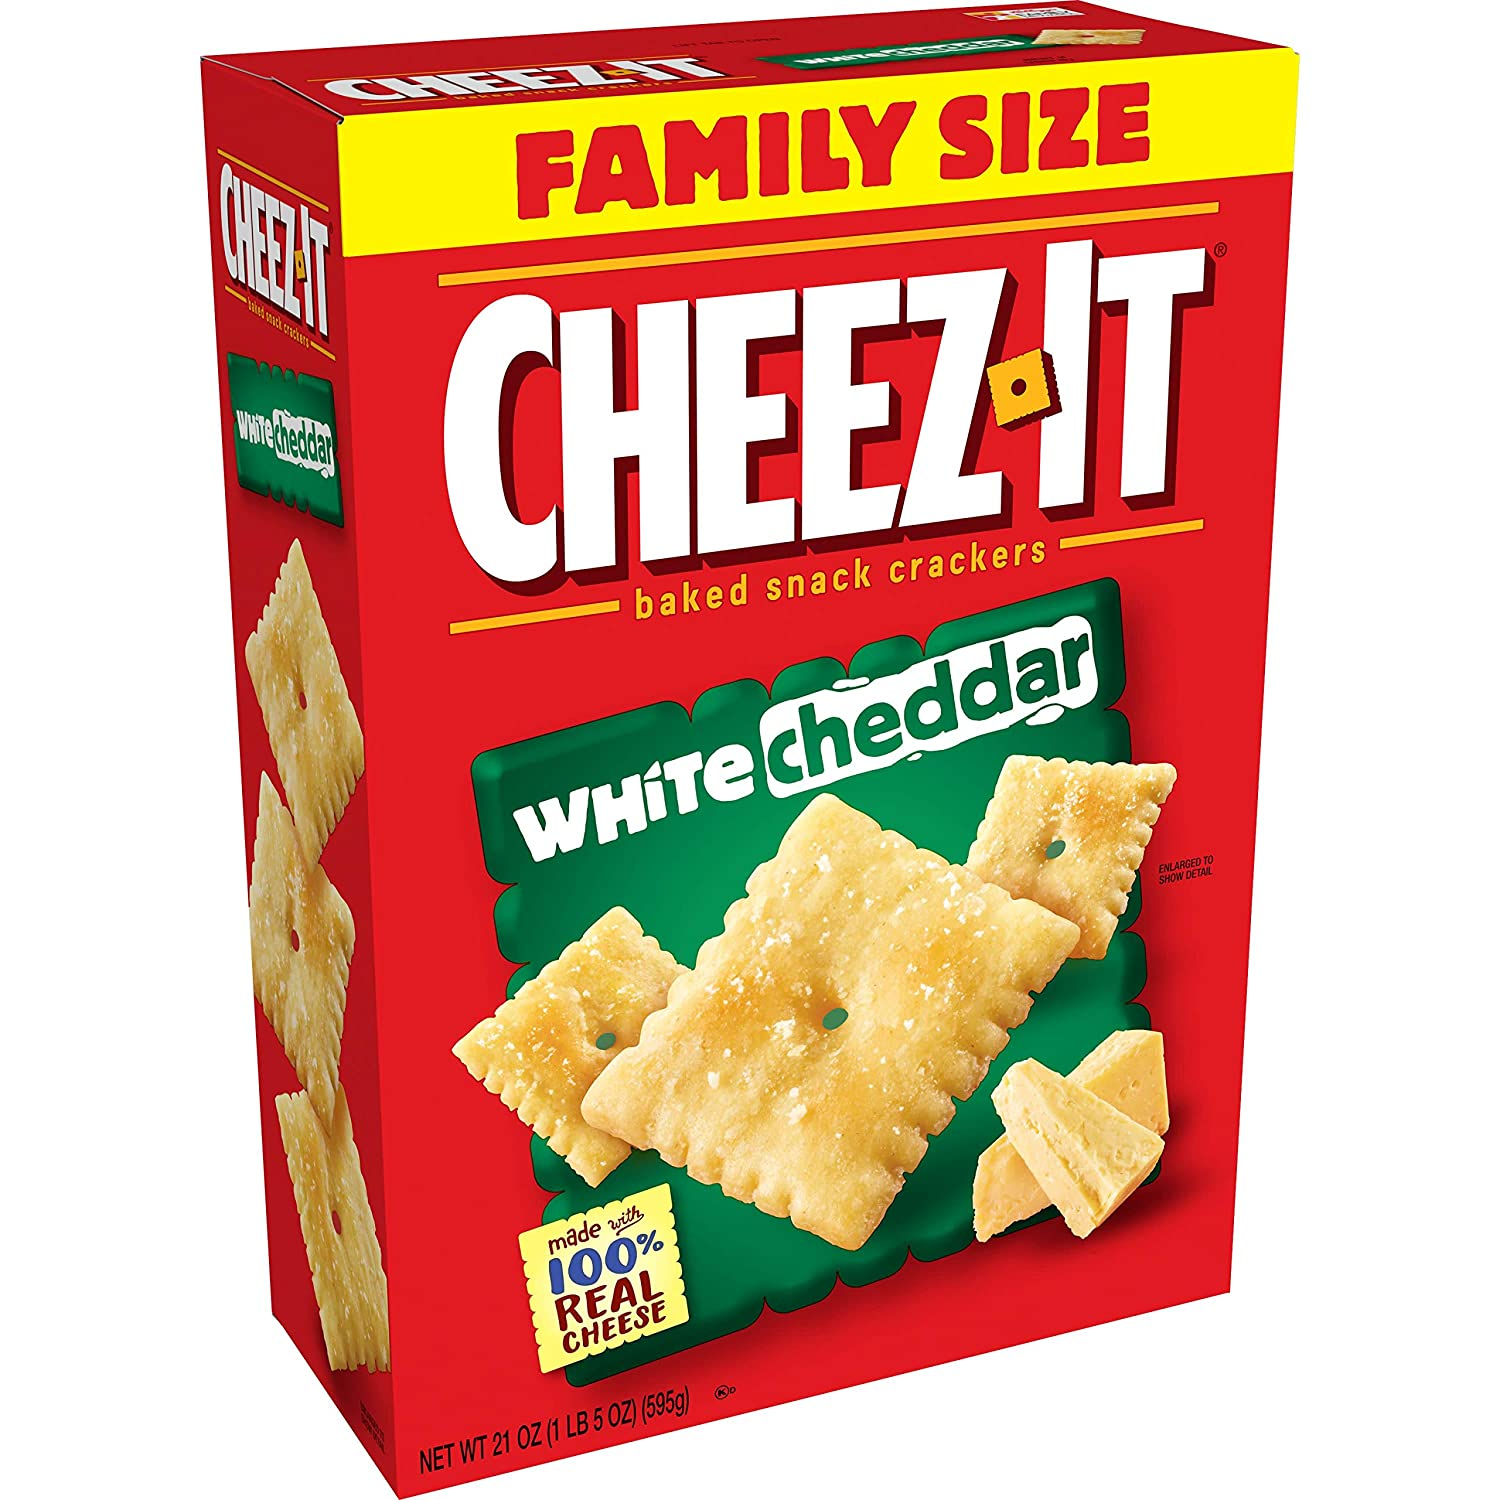 Cheez-It Baked Snack Cheese Crackers, White Cheddar, Family Size, 21 oz Box